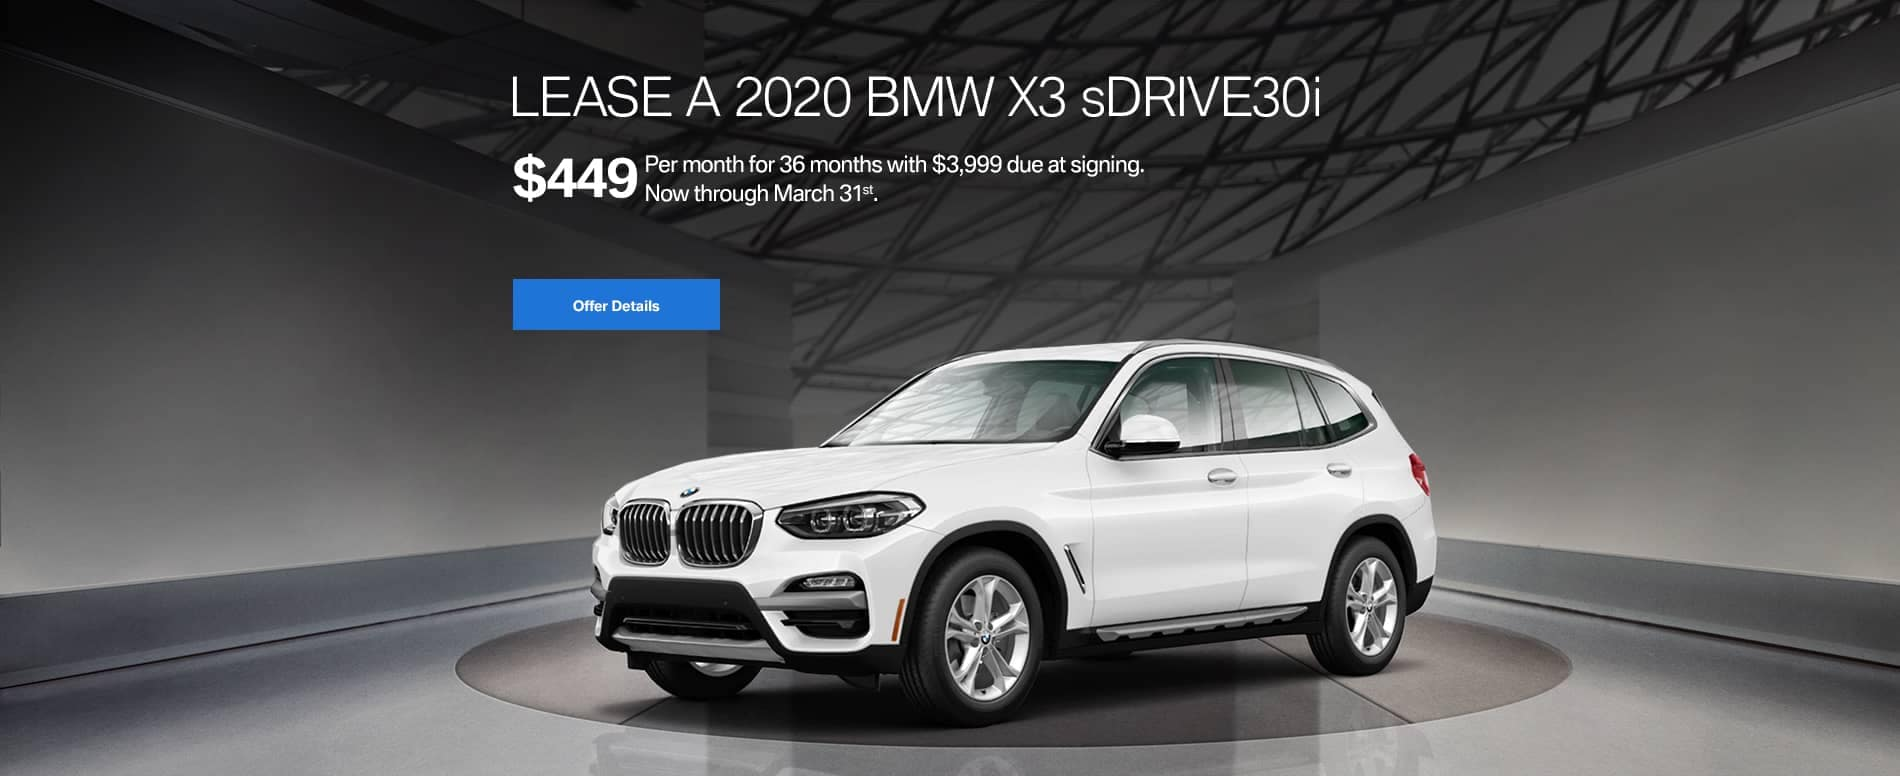 banner for BMW X3 sDrive